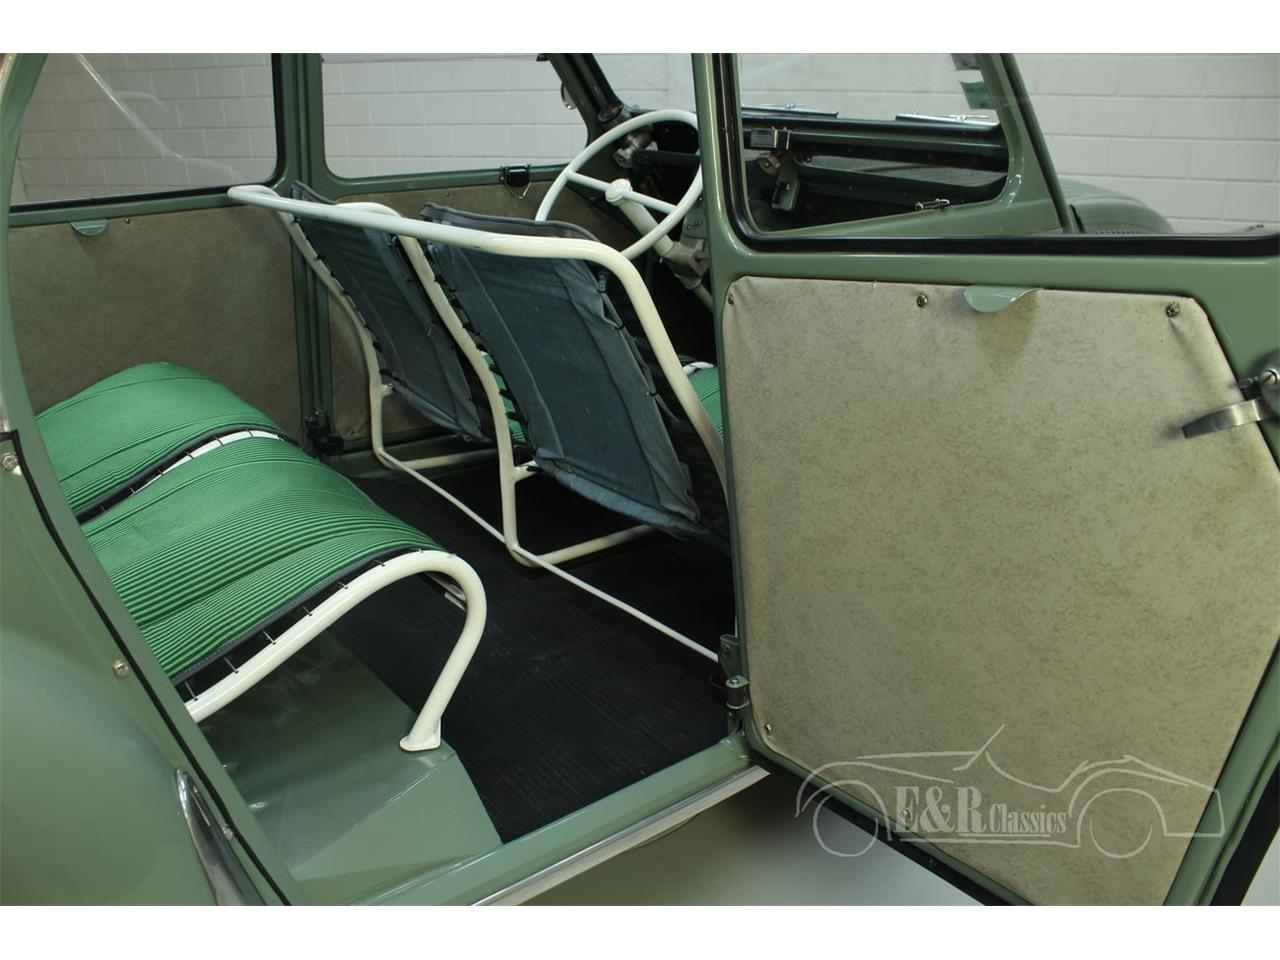 Large Picture of 1957 Citroen 2CV located in Waalwijk - Keine Angabe - - $34,000.00 - PCQ6